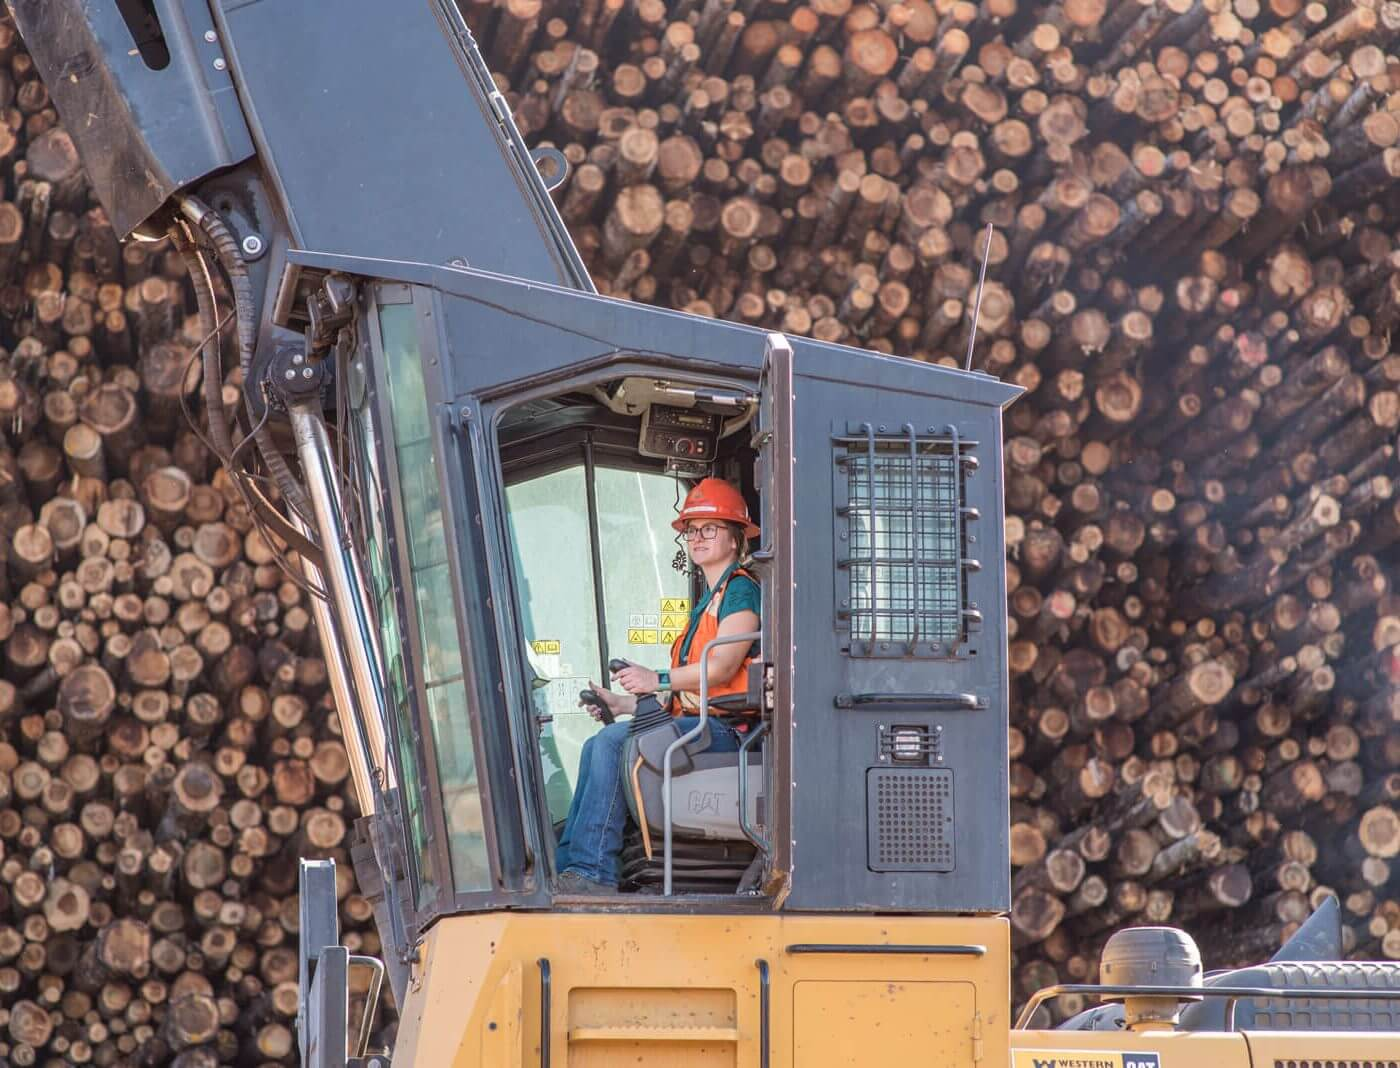 A woman operating large machinery in front of a large pile of logs.